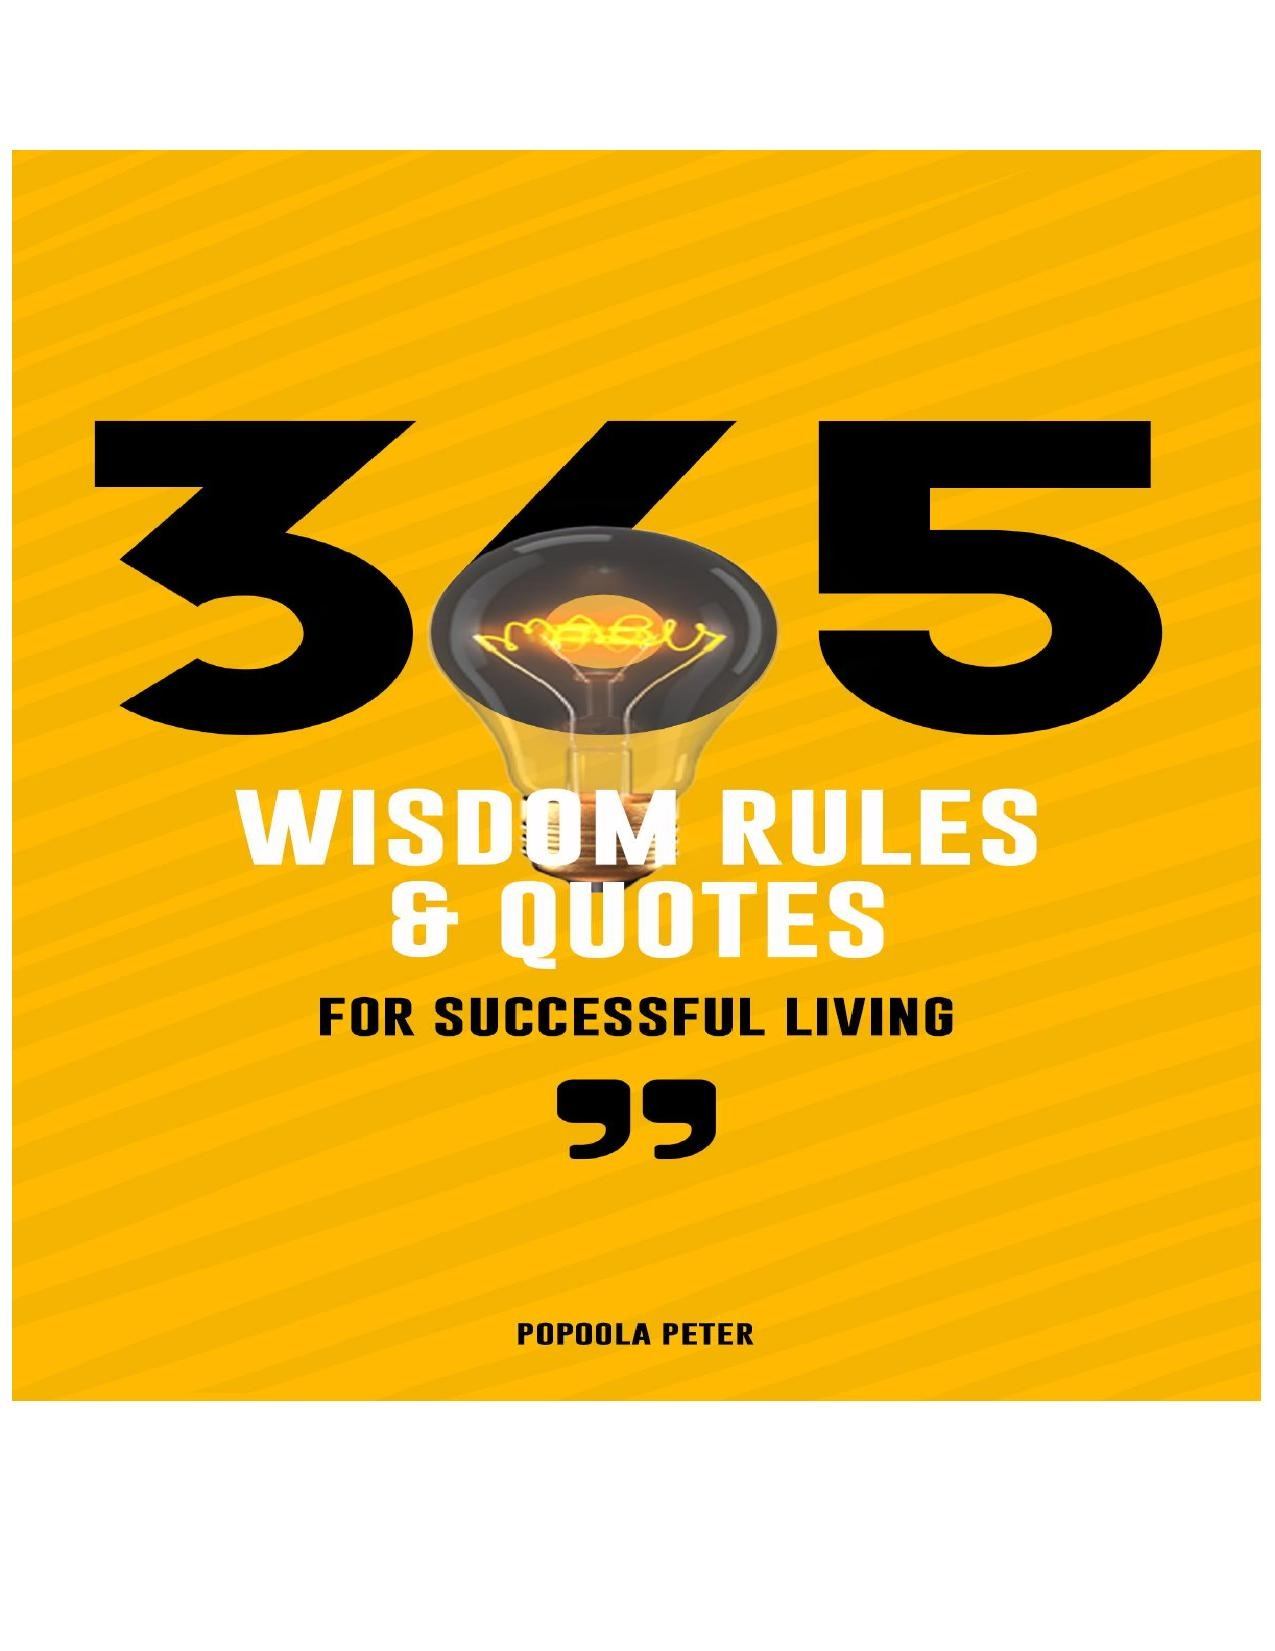 Wisdom rules for Successful living